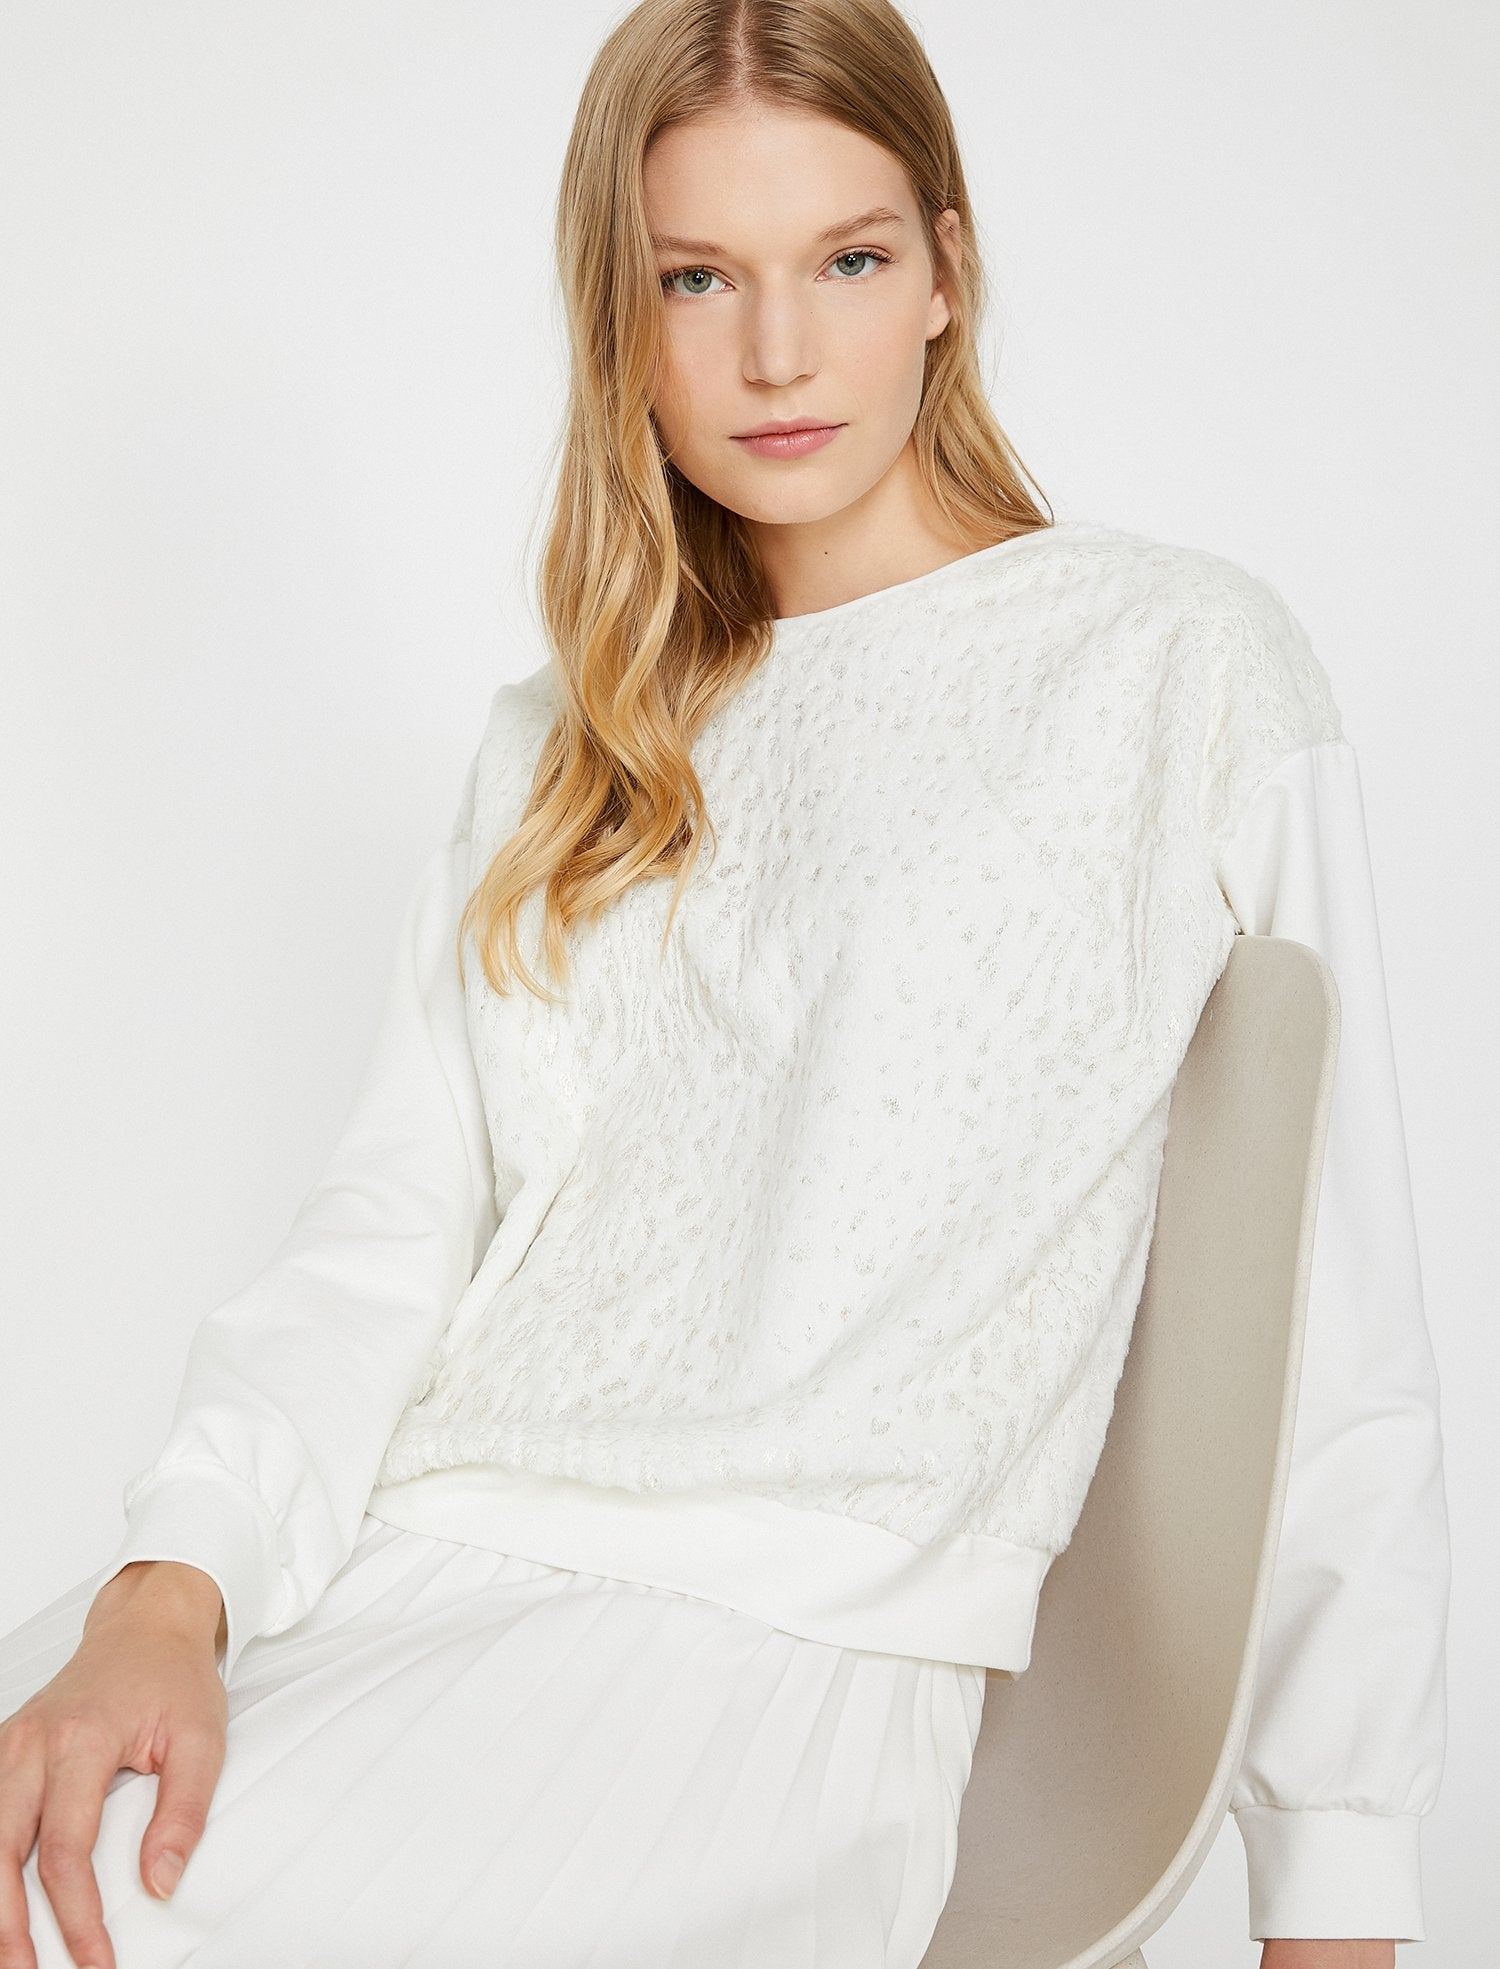 Patterned Tonal Sweatshirt in Cream